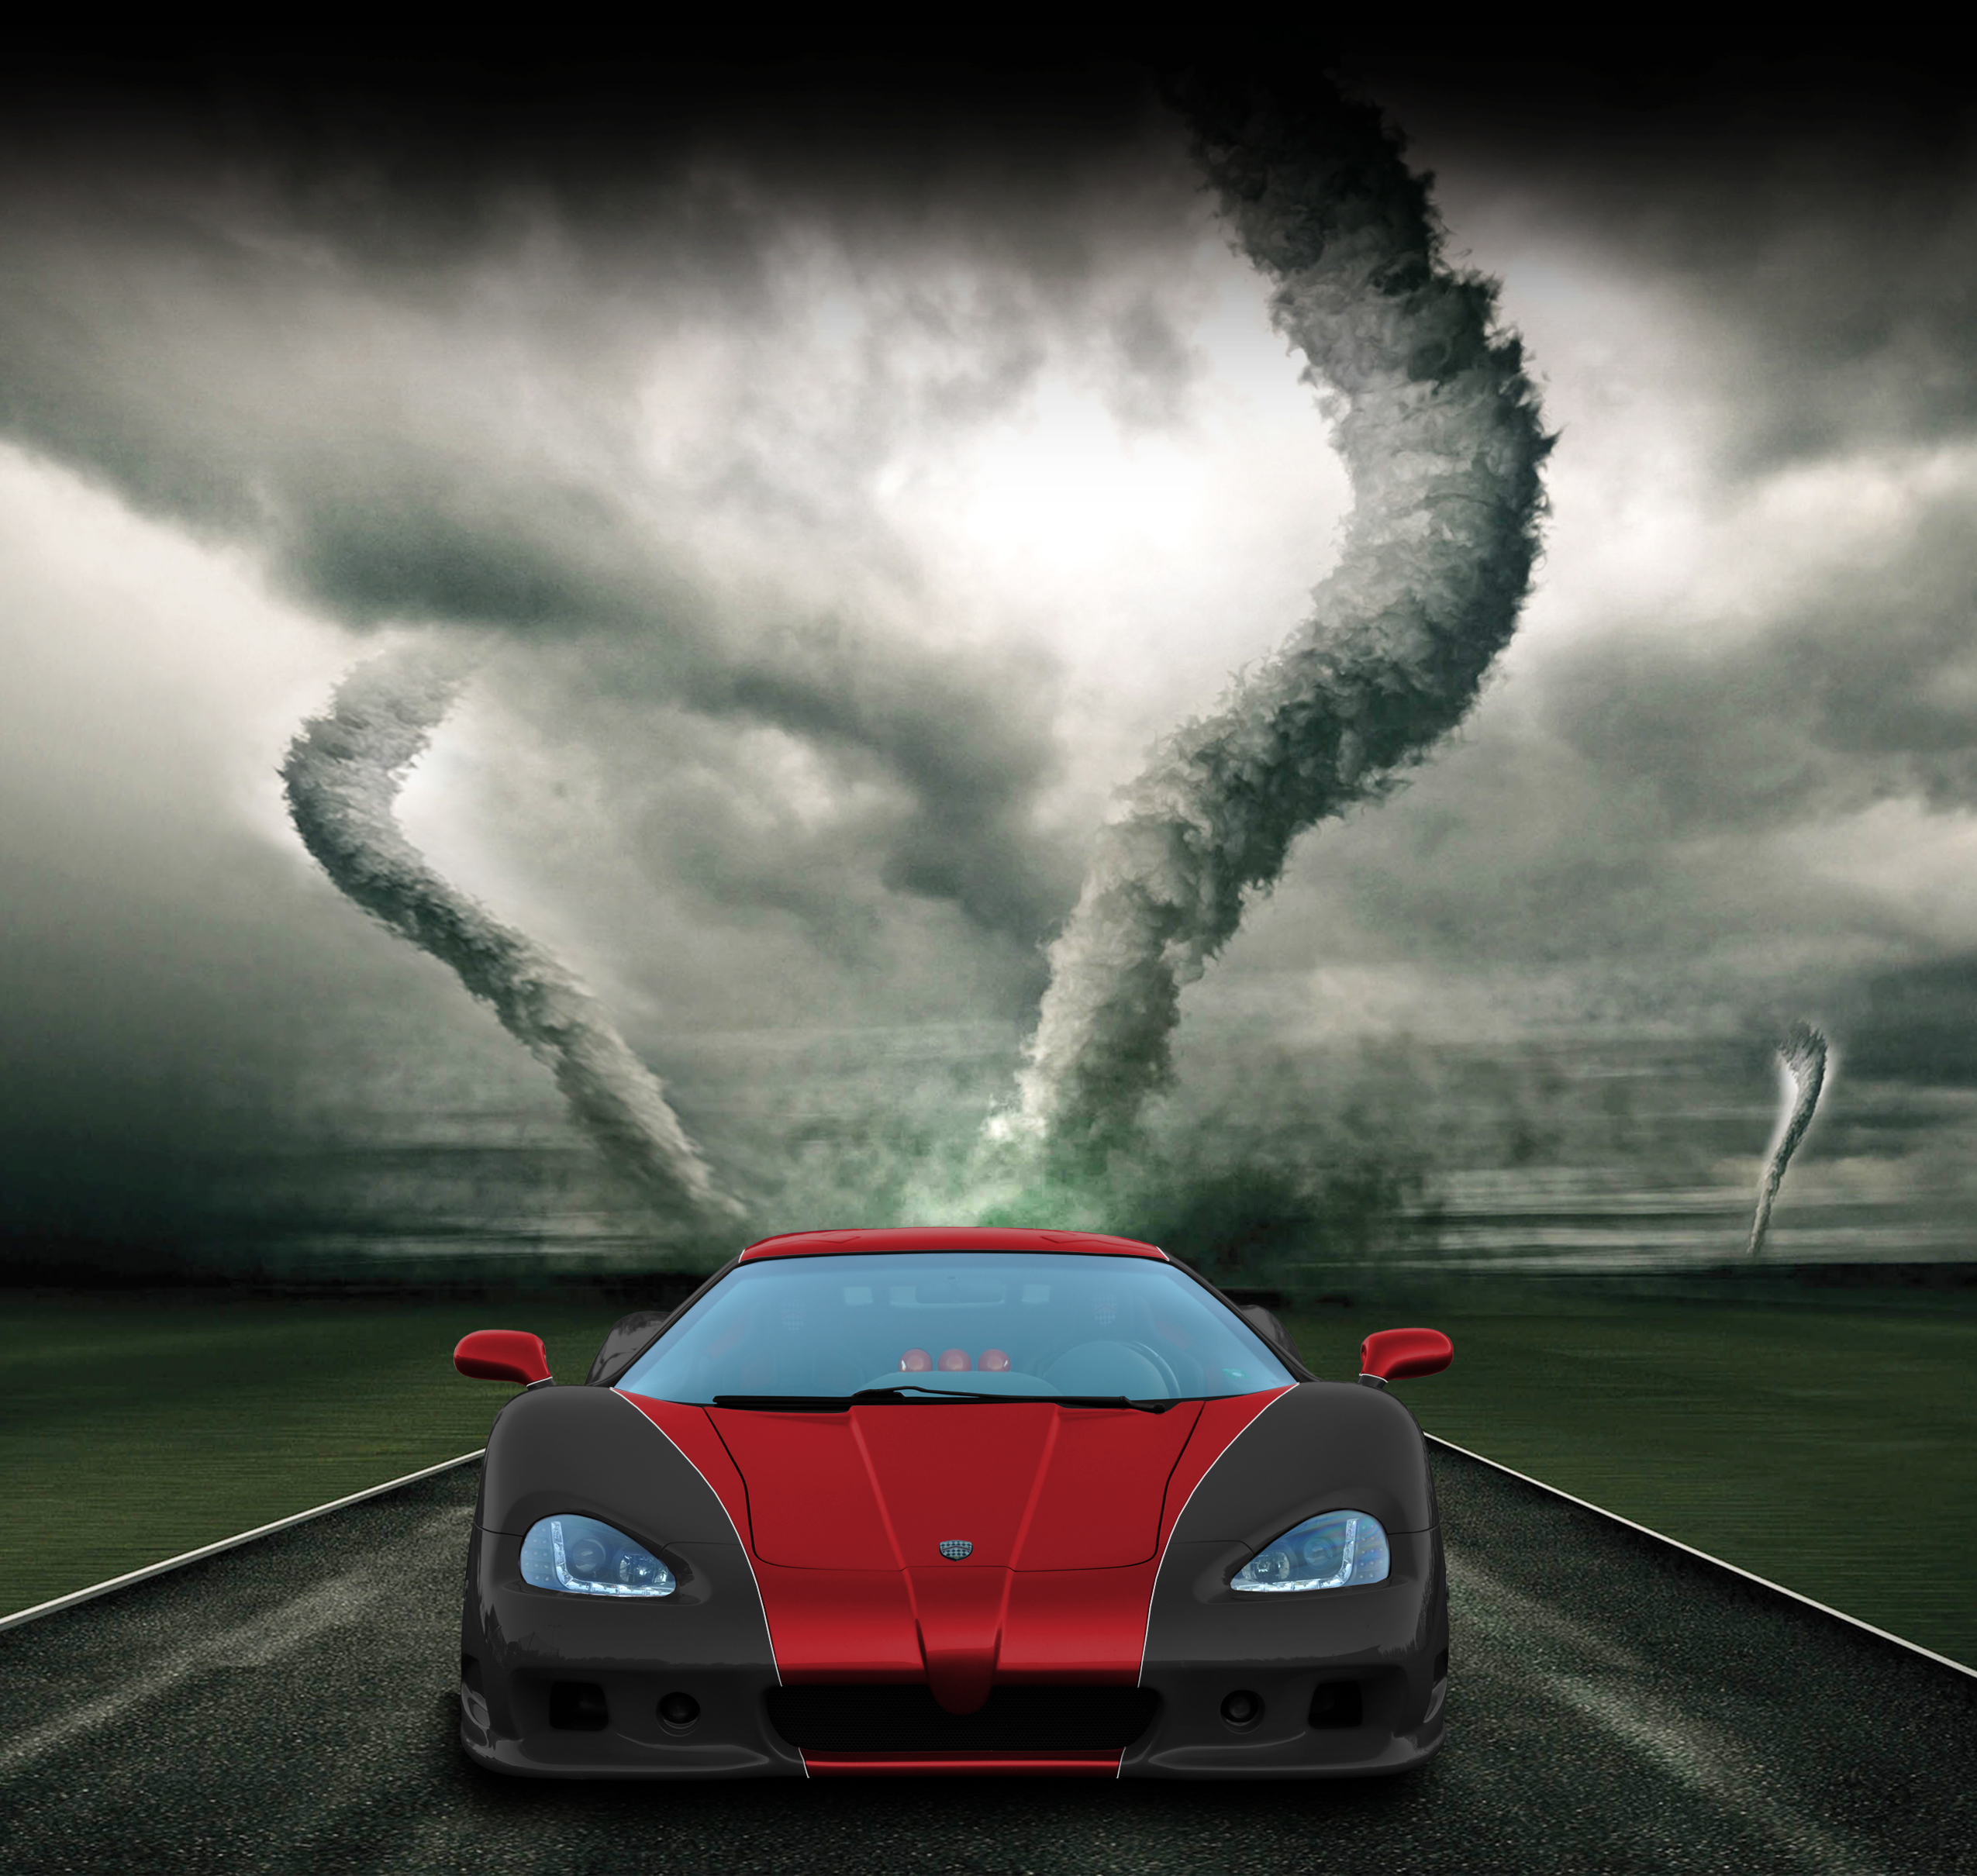 2013 ssc ultimate aero xt top speed 2013 ssc ultimate aero xt top speed sciox Image collections